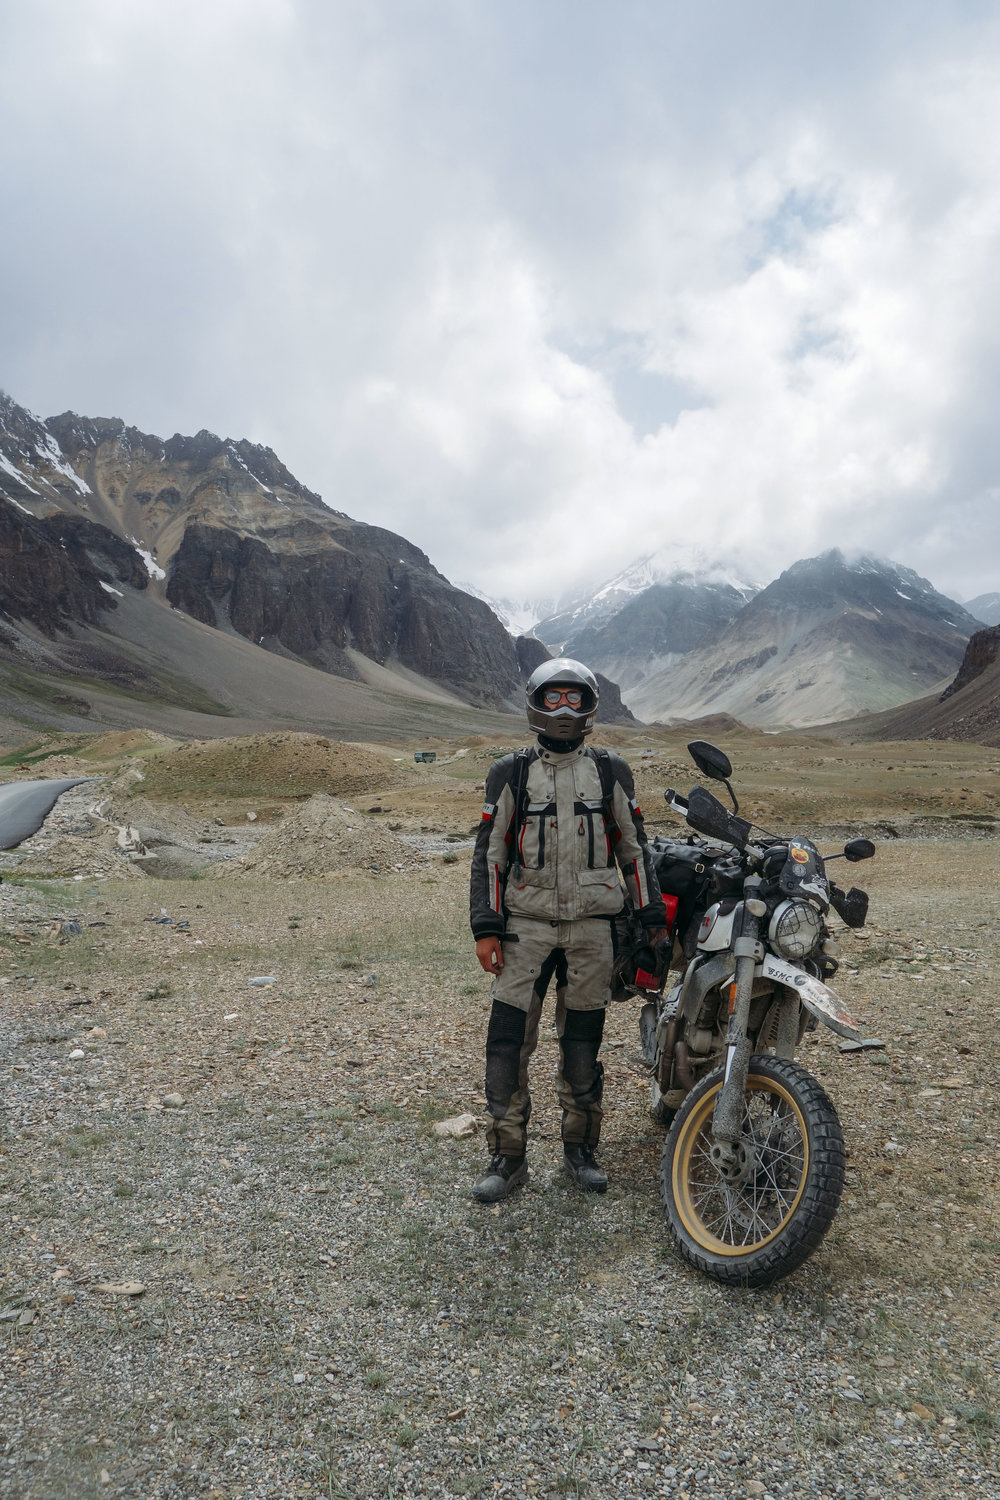 Henry-Crew-35000Miles-Adventure-Rider-Radio-Motorcycle-Podcast-4.jpg